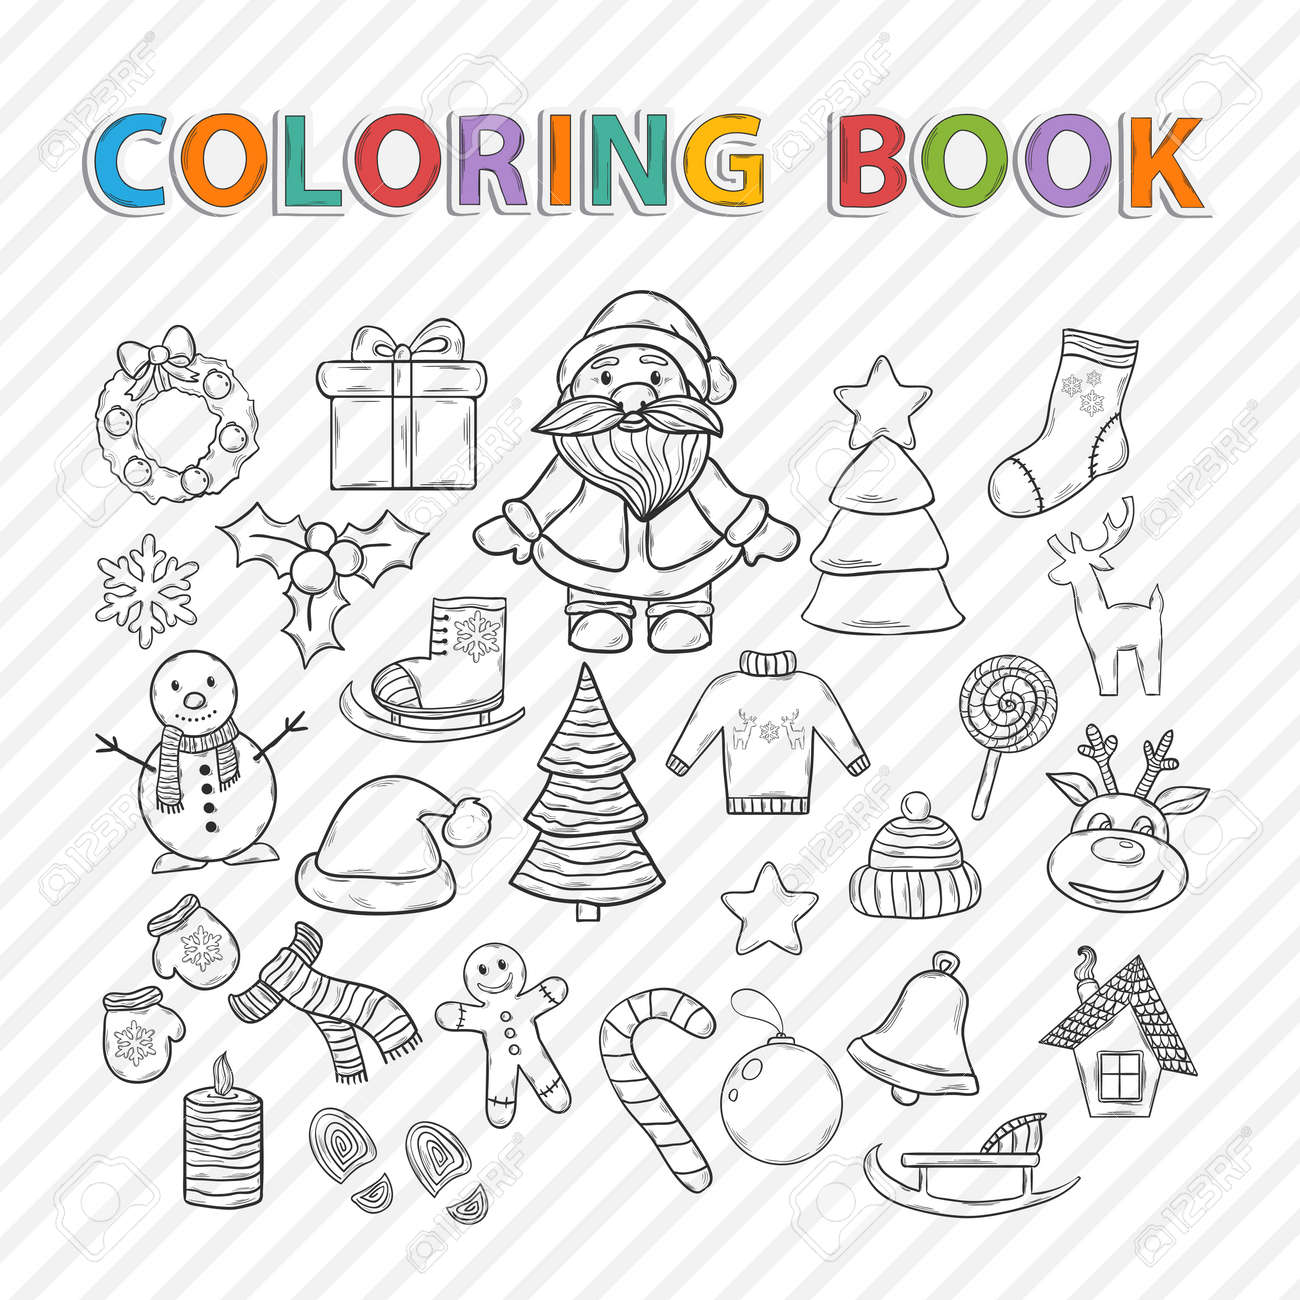 Coloring book snowflake - Vector Vector Coloring Book Merry Christmas Hand Drawn Set With Santa Claus Snowman Christmas Tree Sleigh Candy House Ice Skates Snowflake Gift Candle